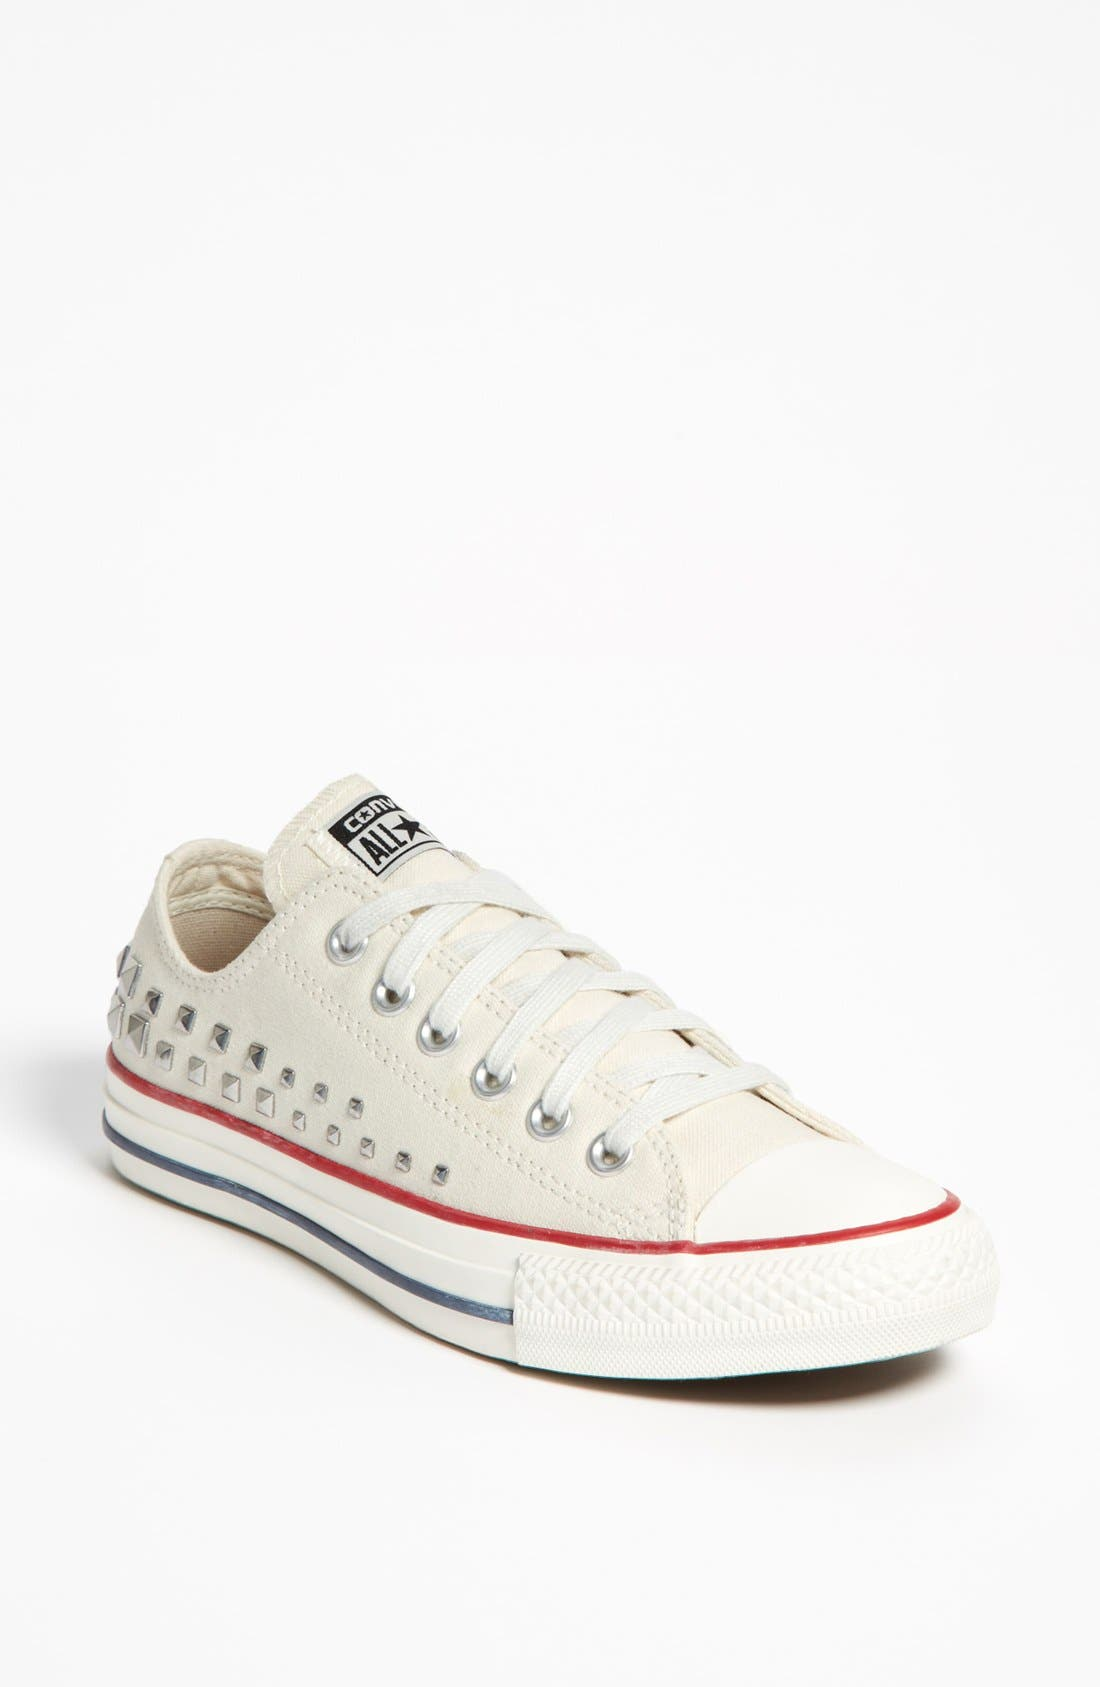 Alternate Image 1 Selected - Converse Chuck Taylor® All Star® 'Collar Studs' Sneaker (Women) (Online Only)